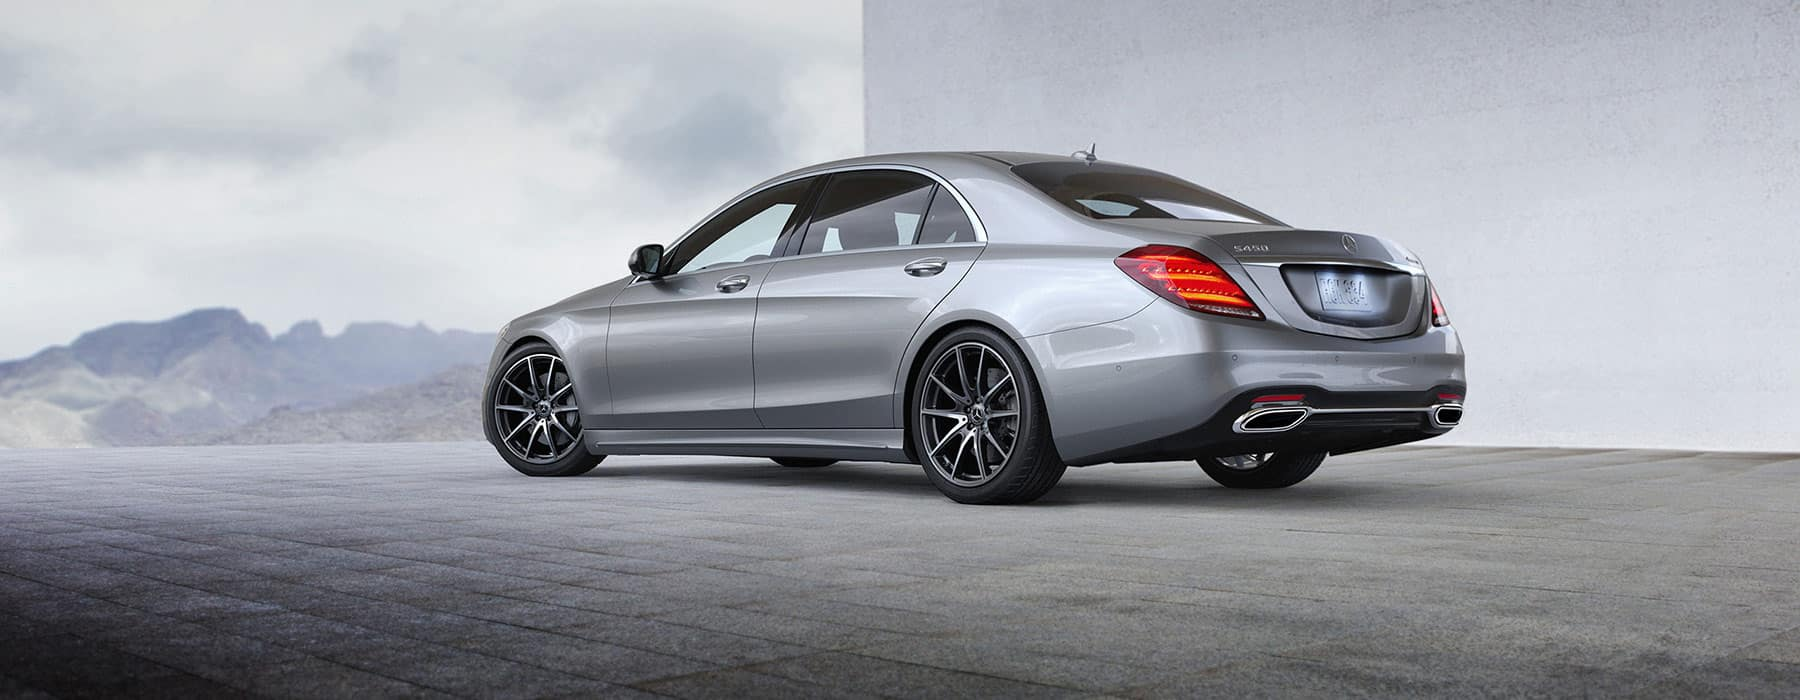 The all new 2018 s 450 sedan mercedes benz of chicago for Mercedes benz chicagoland